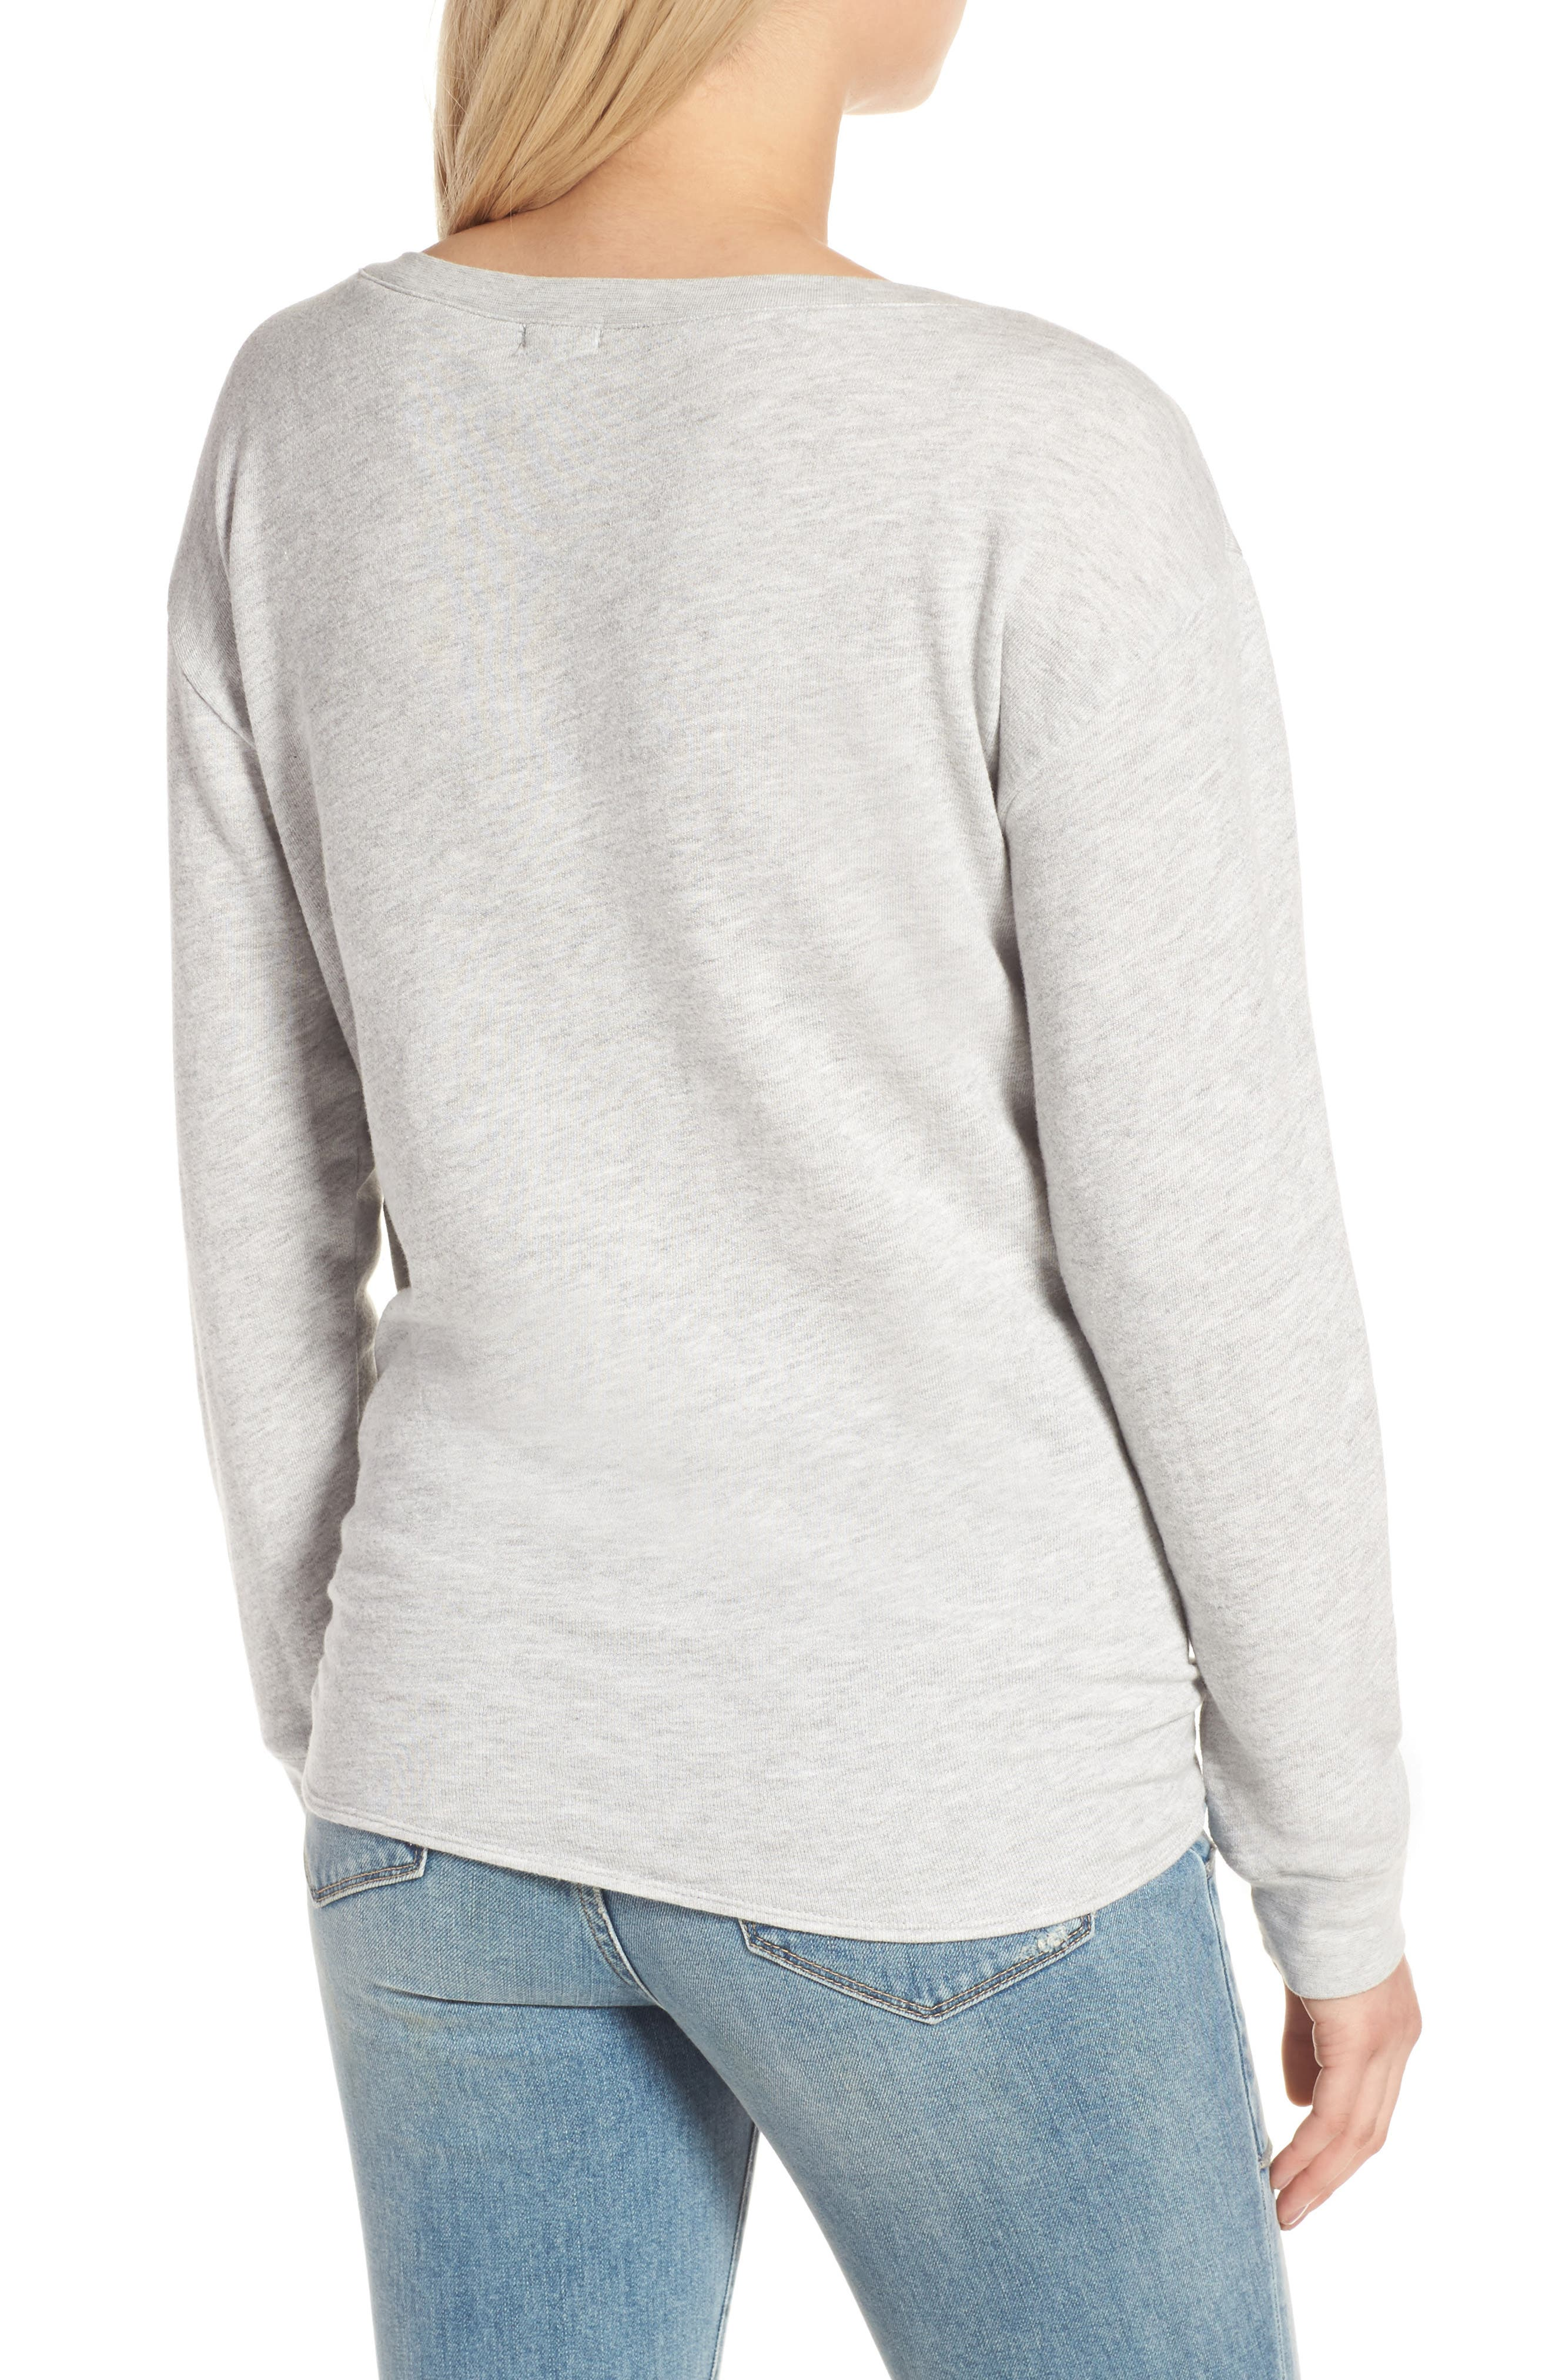 HINGE,                             Tie Front Pullover,                             Alternate thumbnail 2, color,                             020